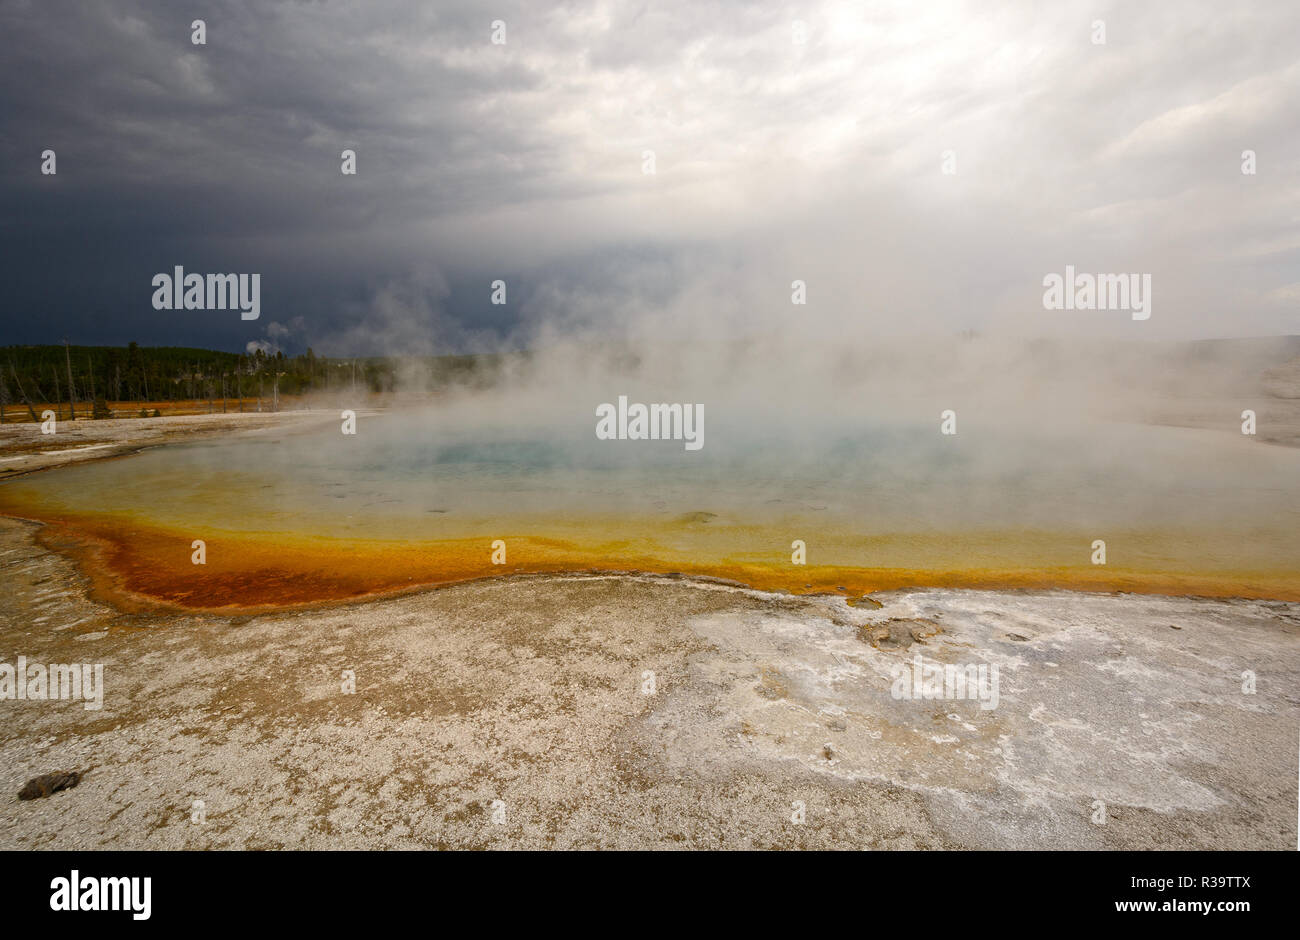 Storm Clouds over Sapphire Pool in Biscuit Basin in Yellowstone National park in Wyoming - Stock Image